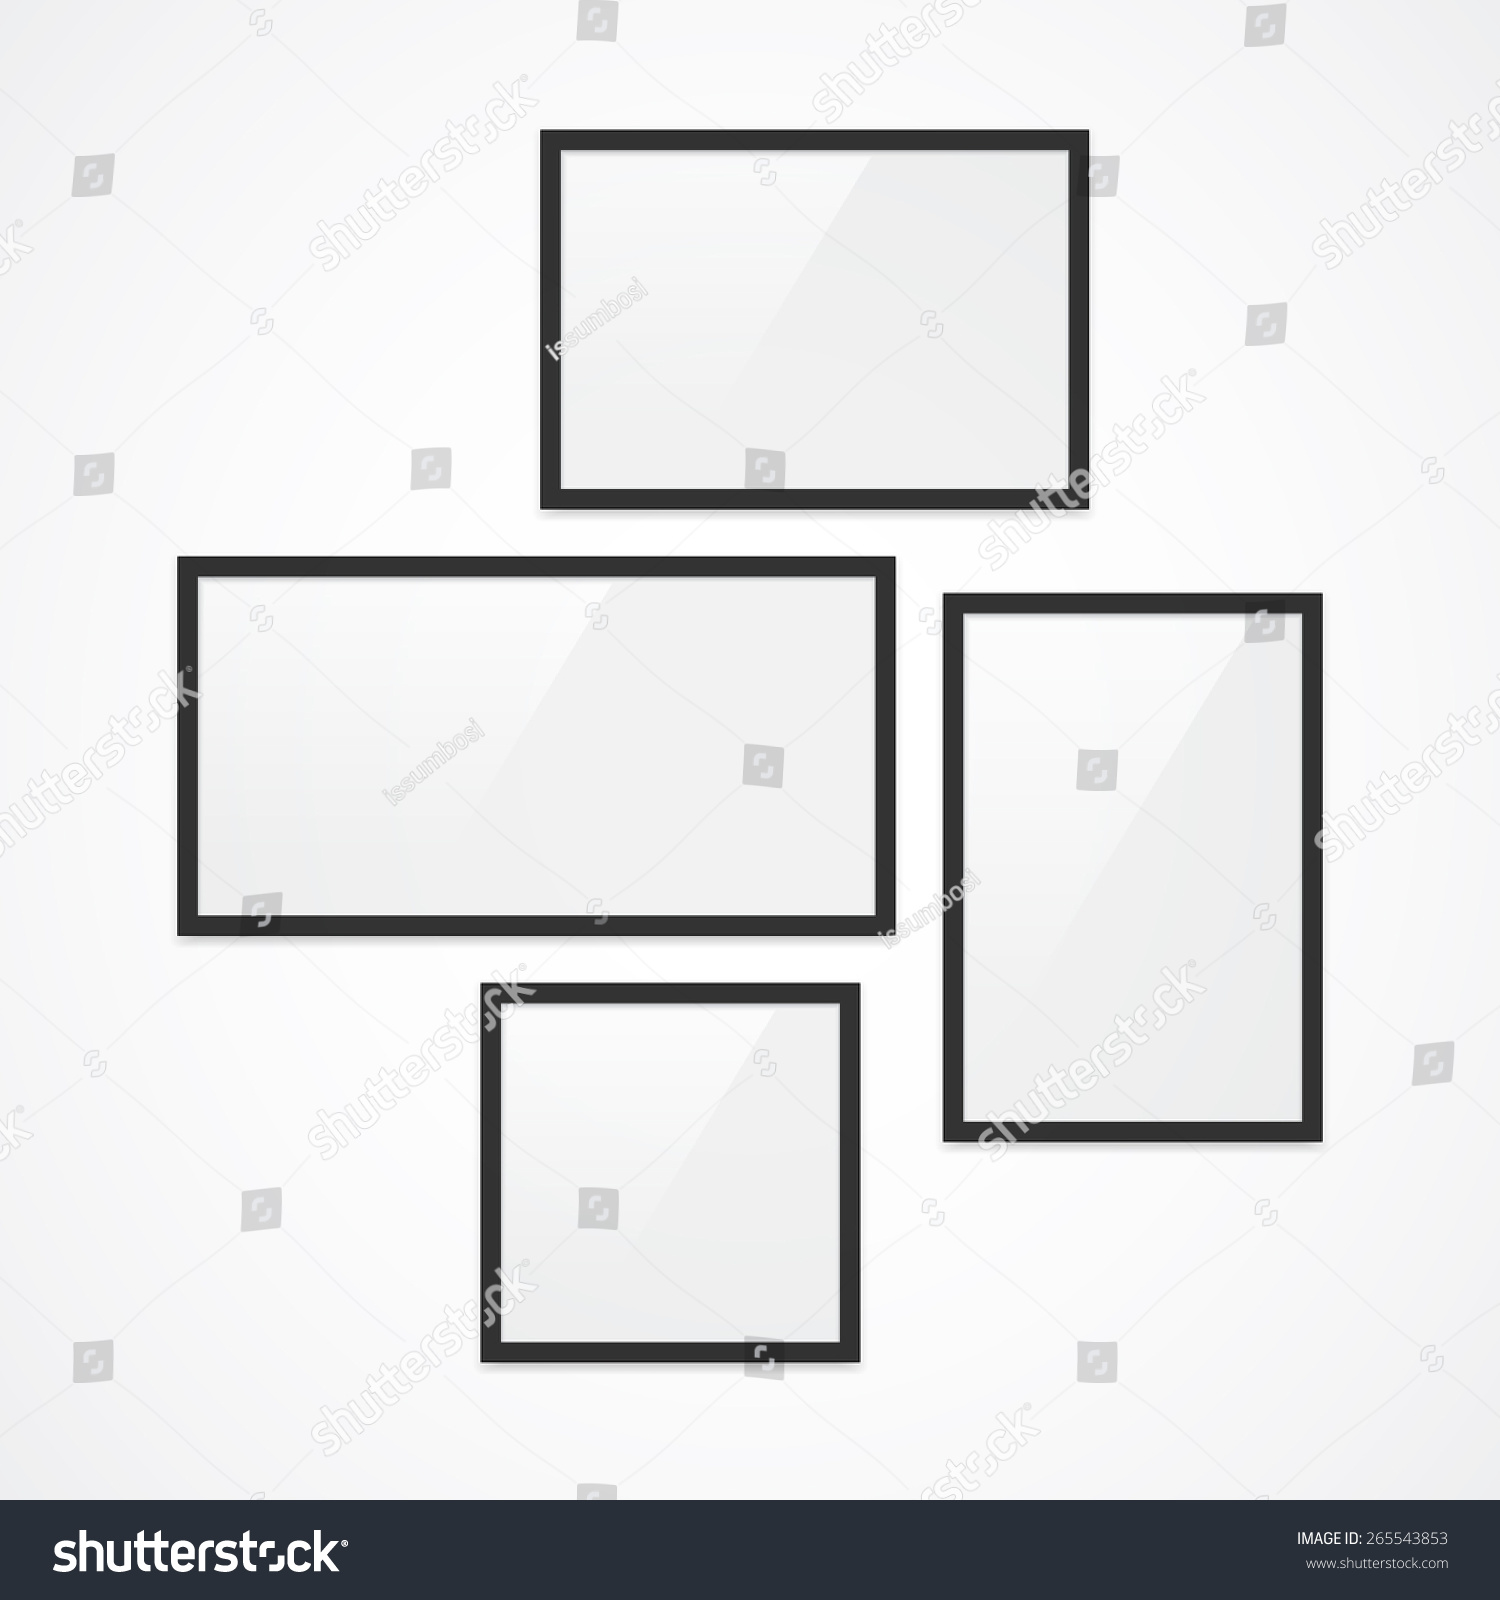 Set High Quality Black Vector Photo Stock Vector (Royalty Free ...